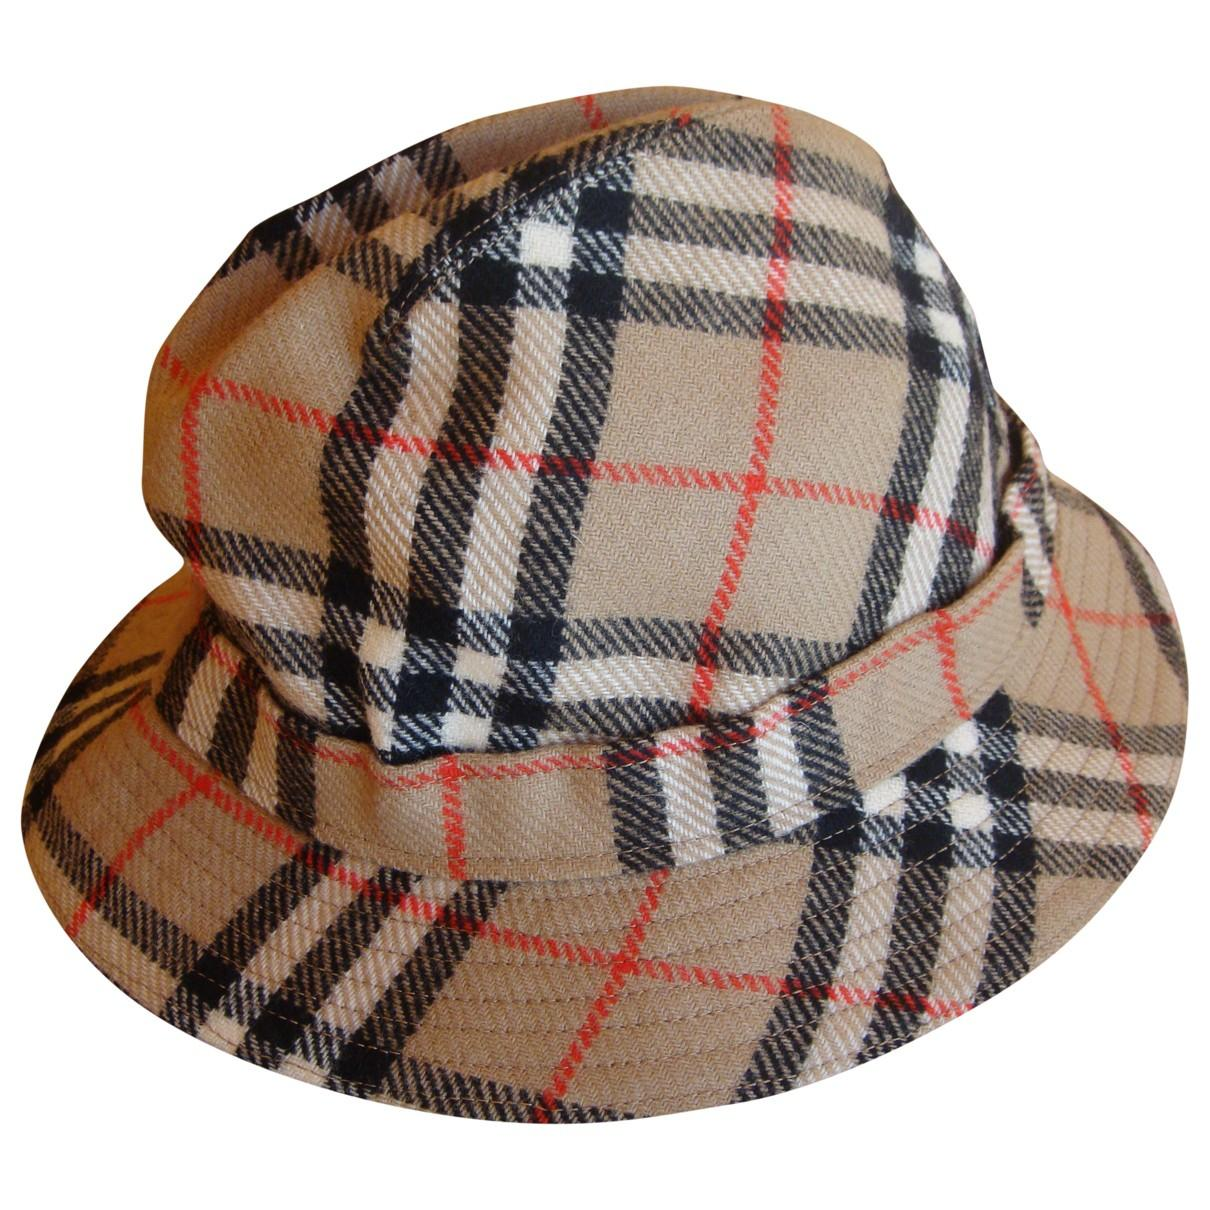 81be49dcec2 Lyst - Burberry Wool Hat in Natural for Men